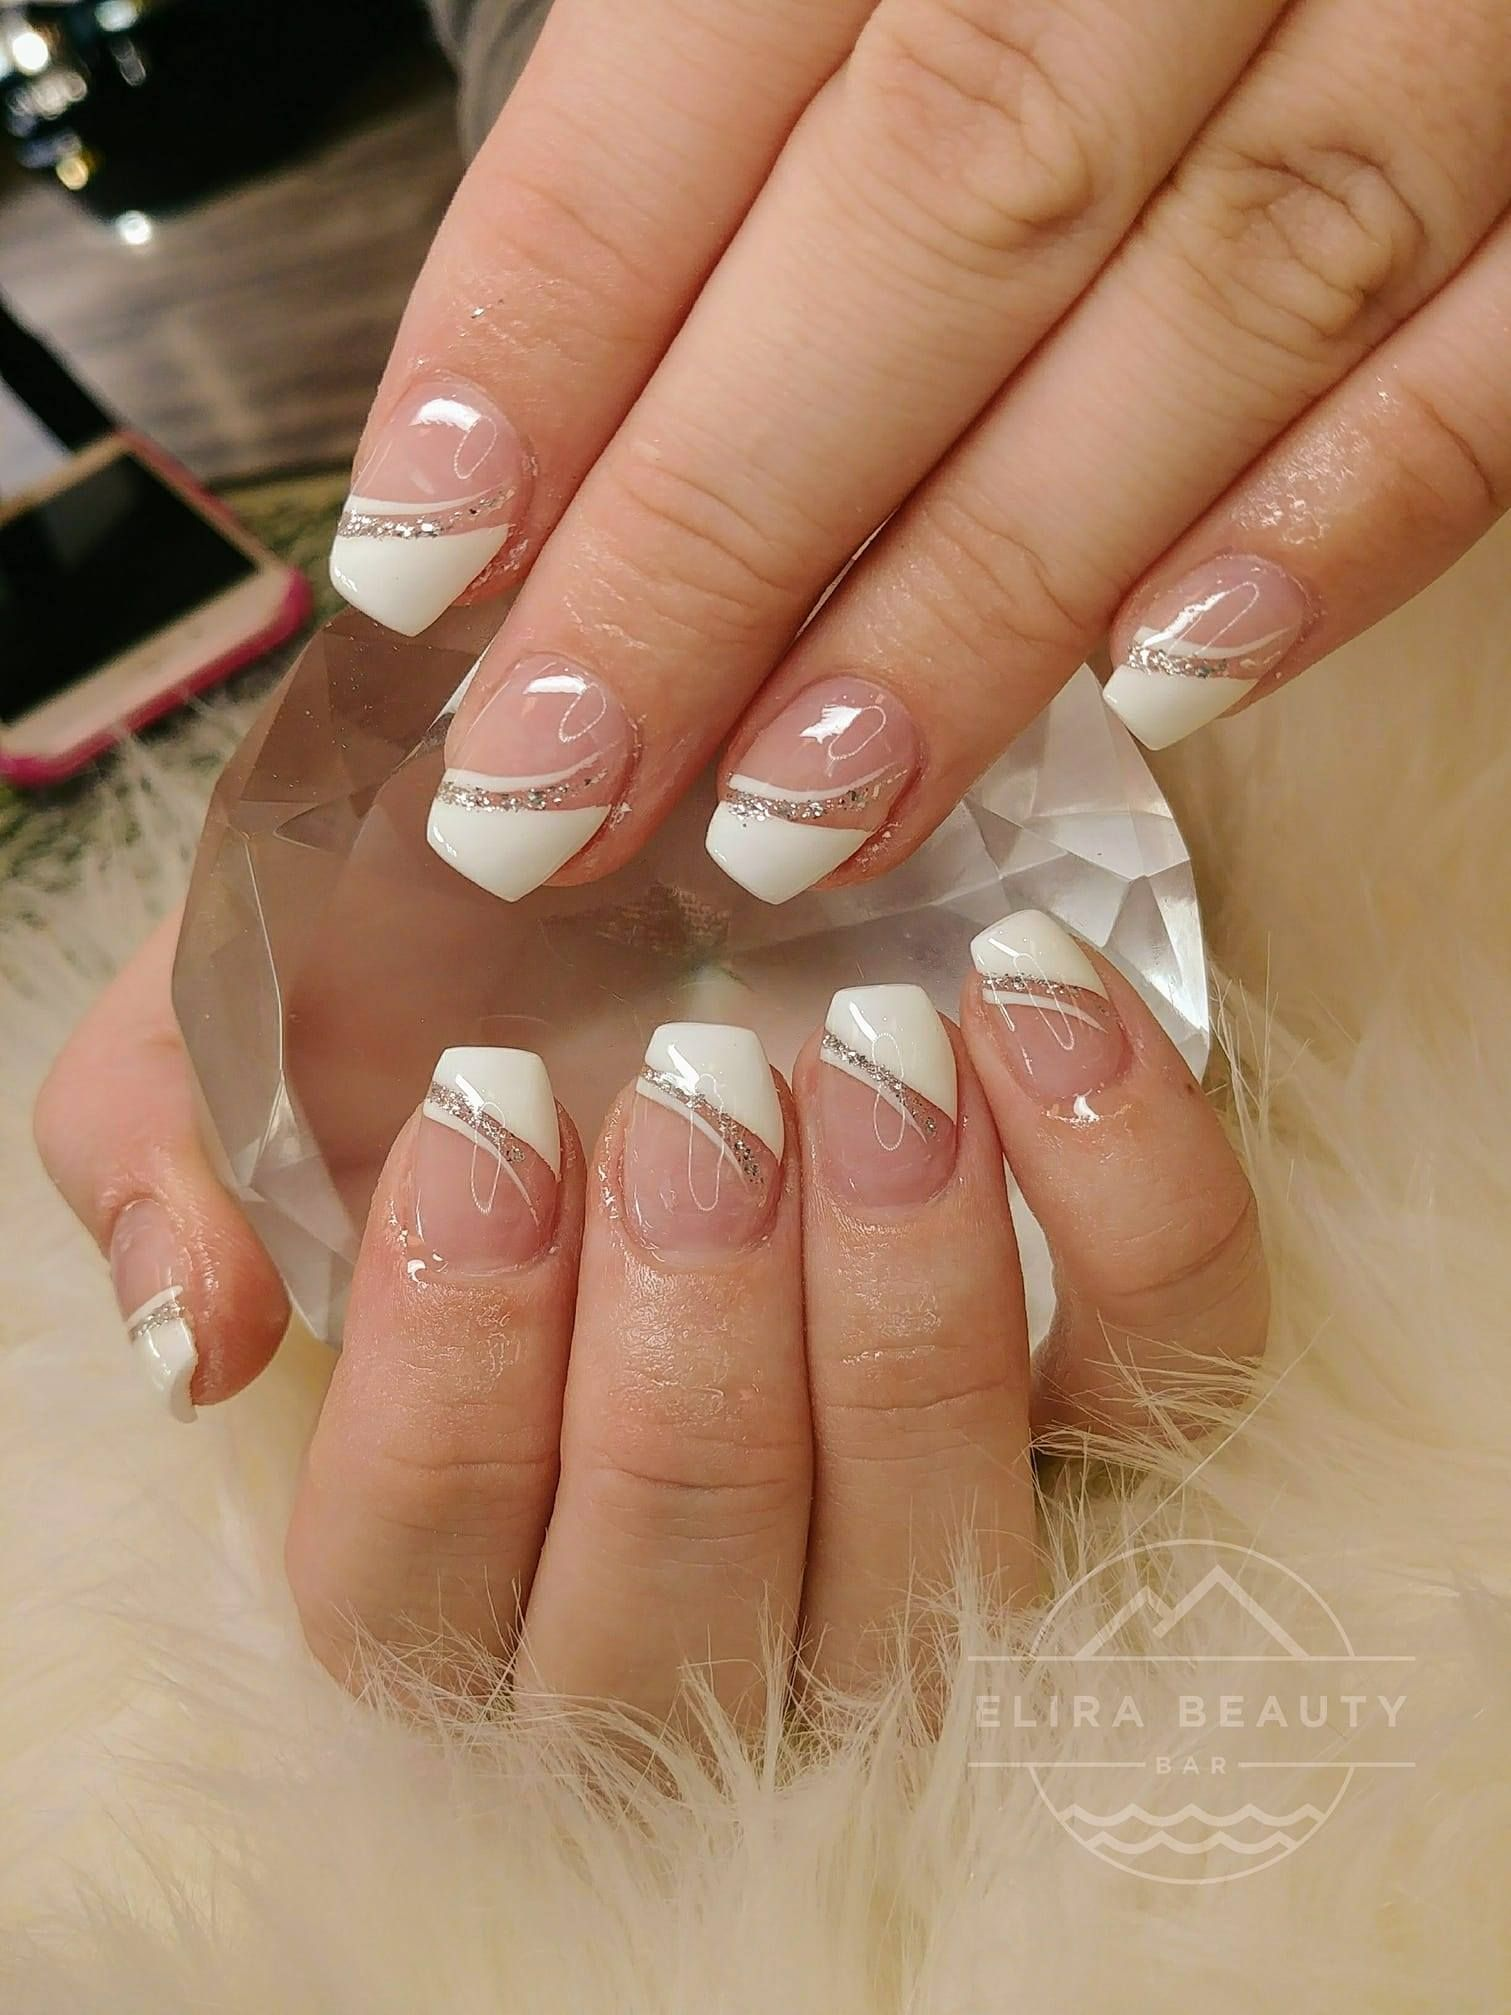 New Style Of French Tip Nails Acrylic Nails French Tip Nails French Tip Acrylic Nails French Nails